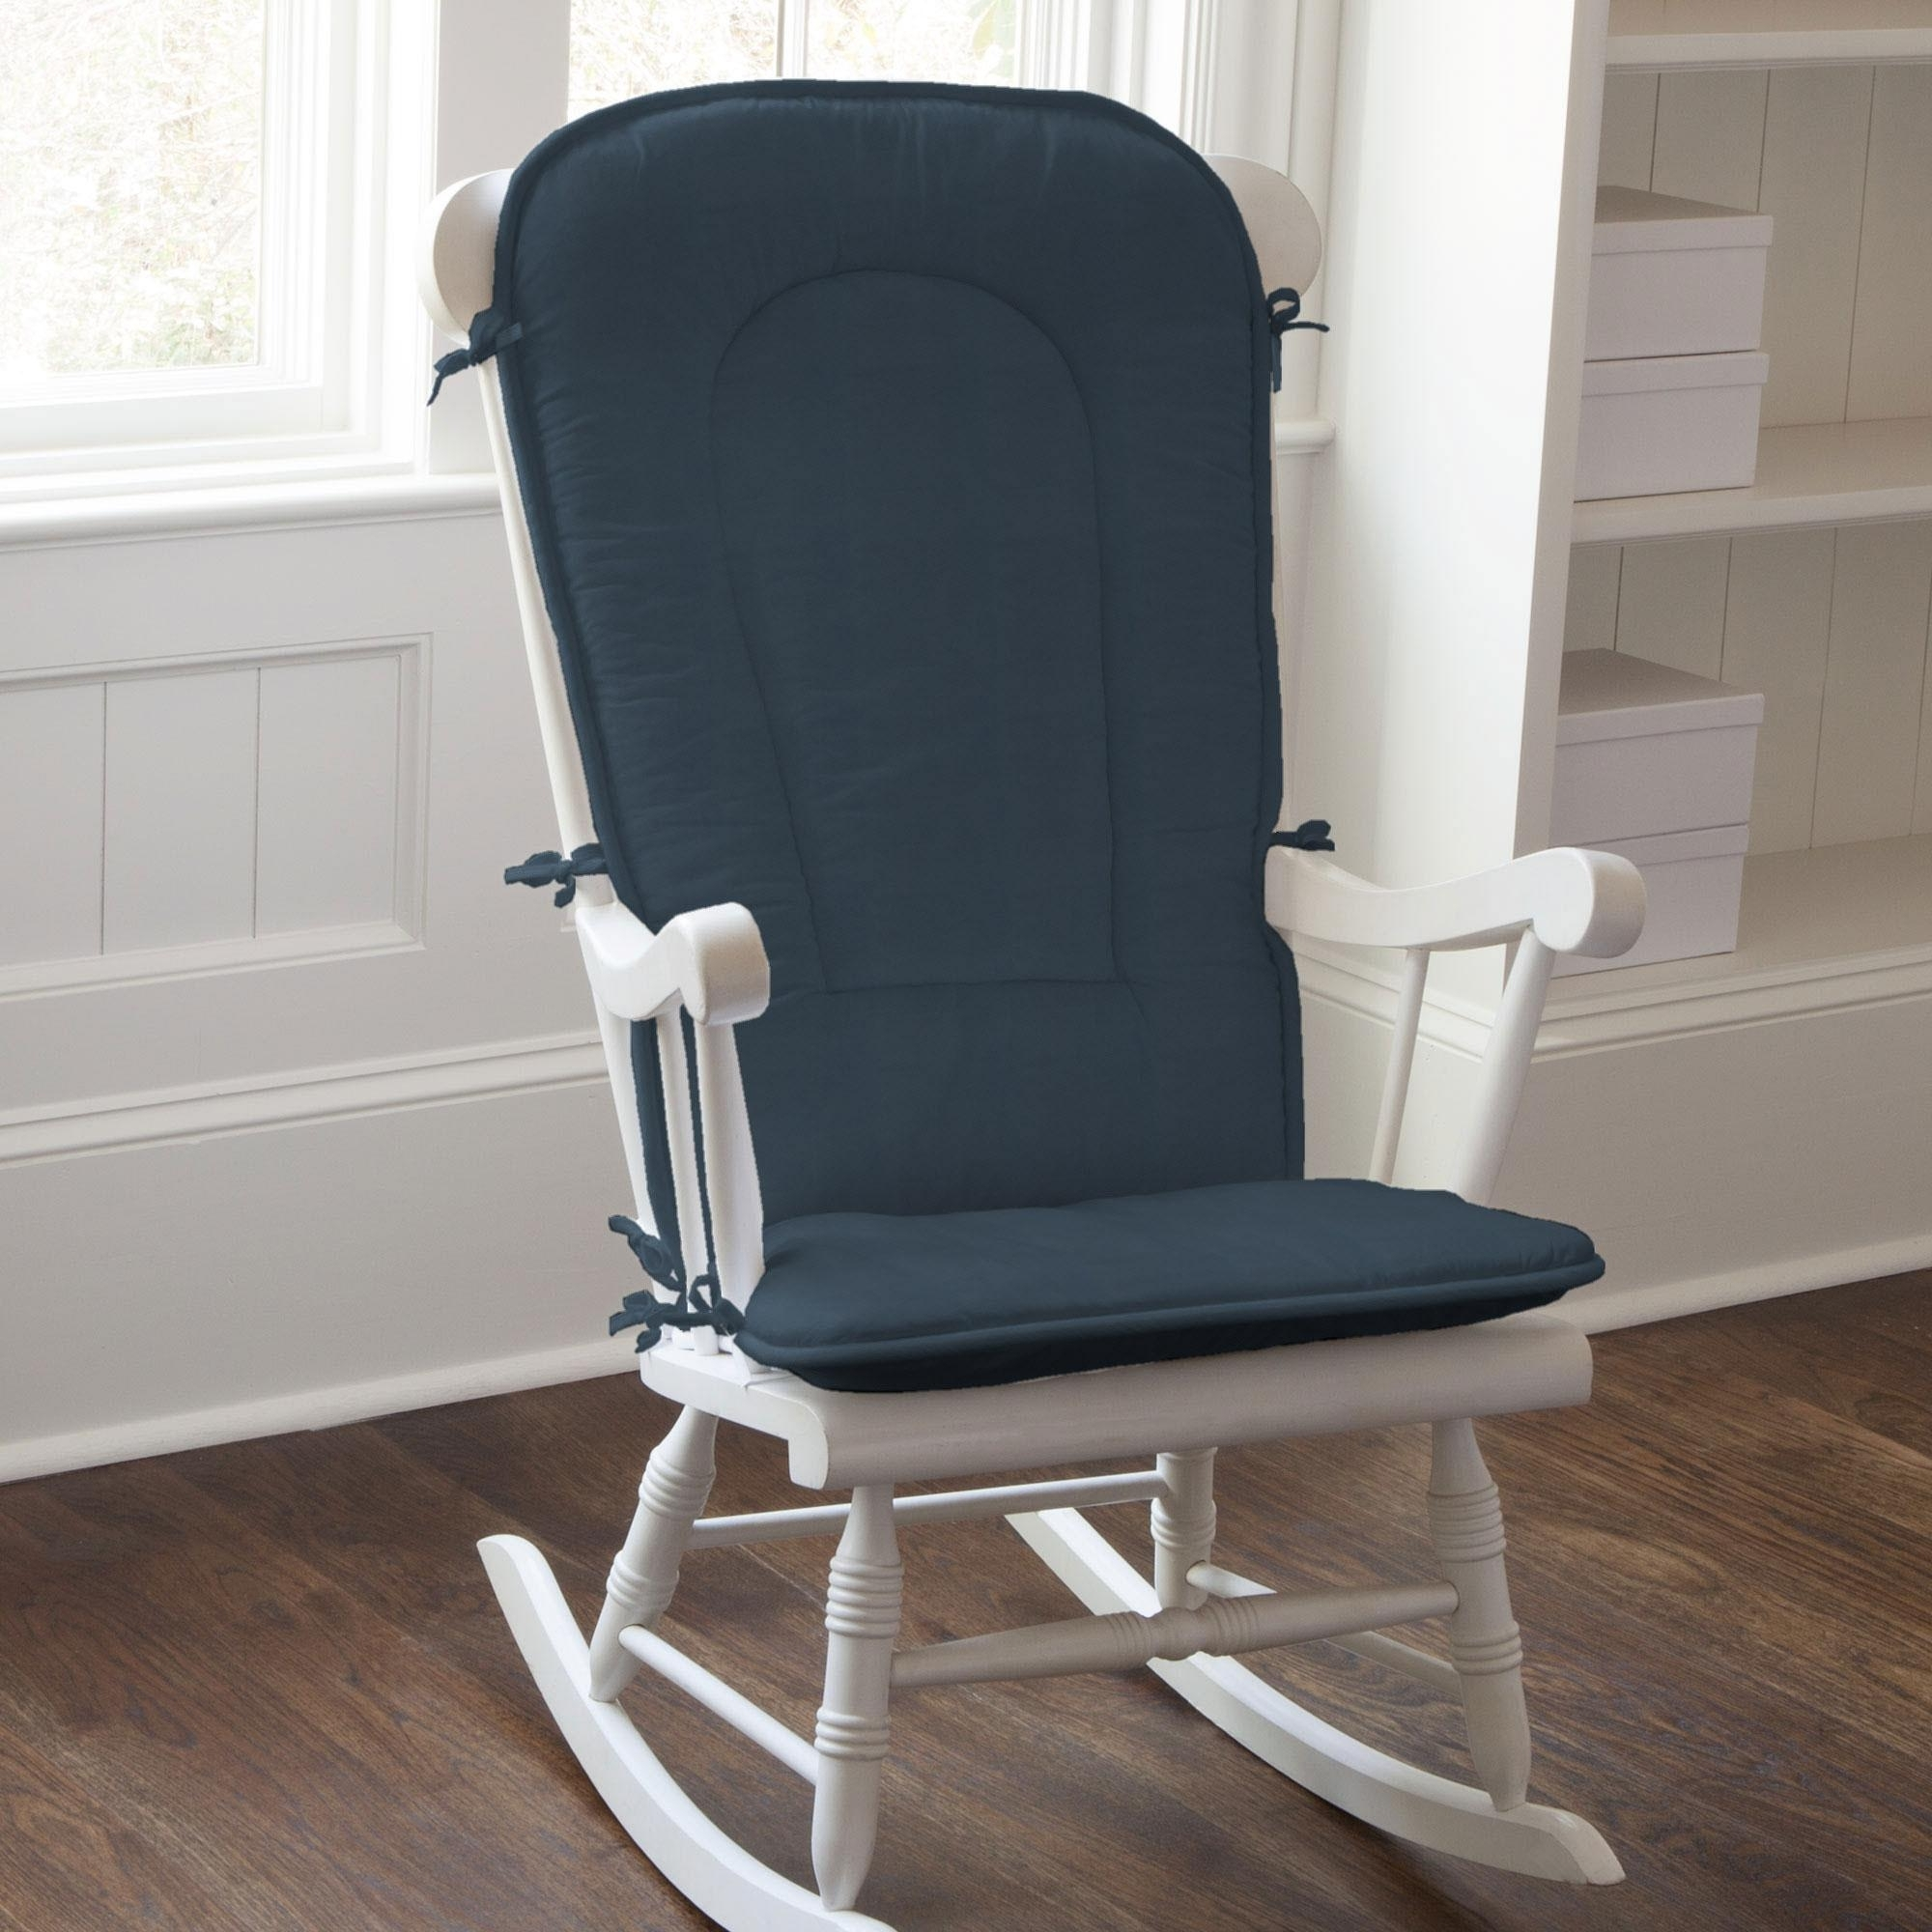 2019 Rocking Chairs With Cushions Pertaining To Solid Navy Rocking Chair Pad (View 2 of 20)